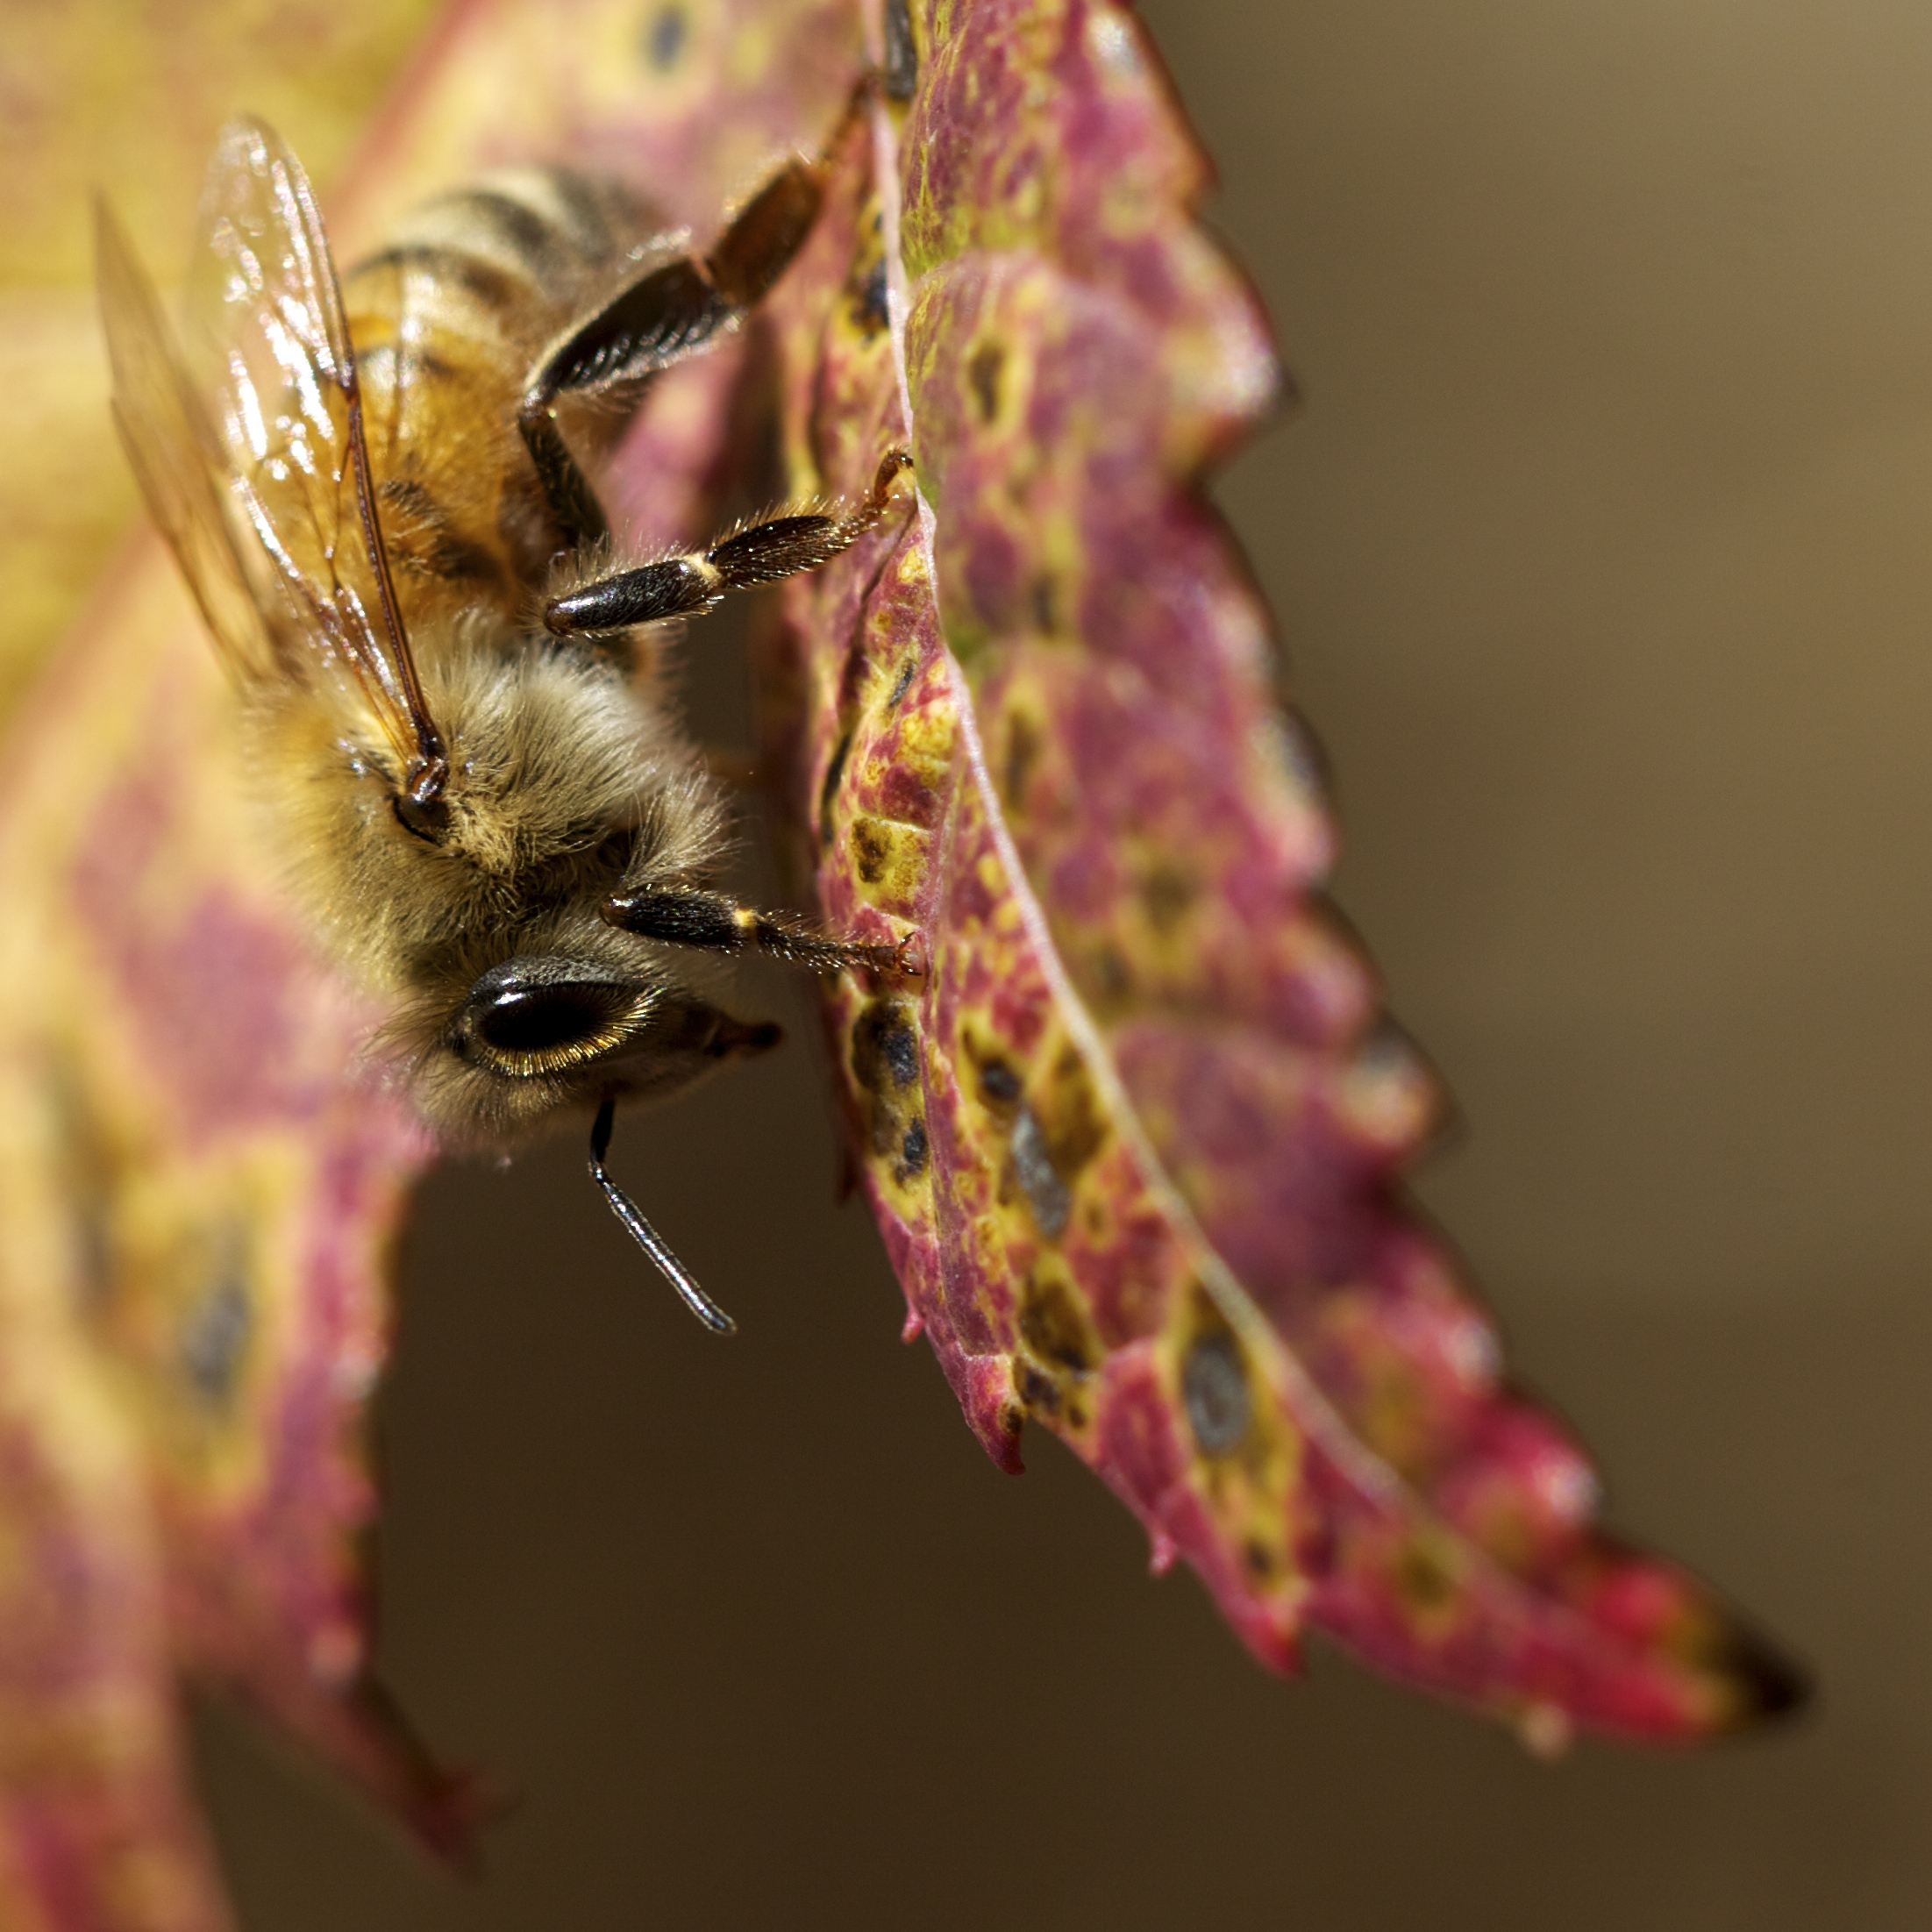 A honeybee seeking something along the turning leaf of the Amur maple beside the hive.